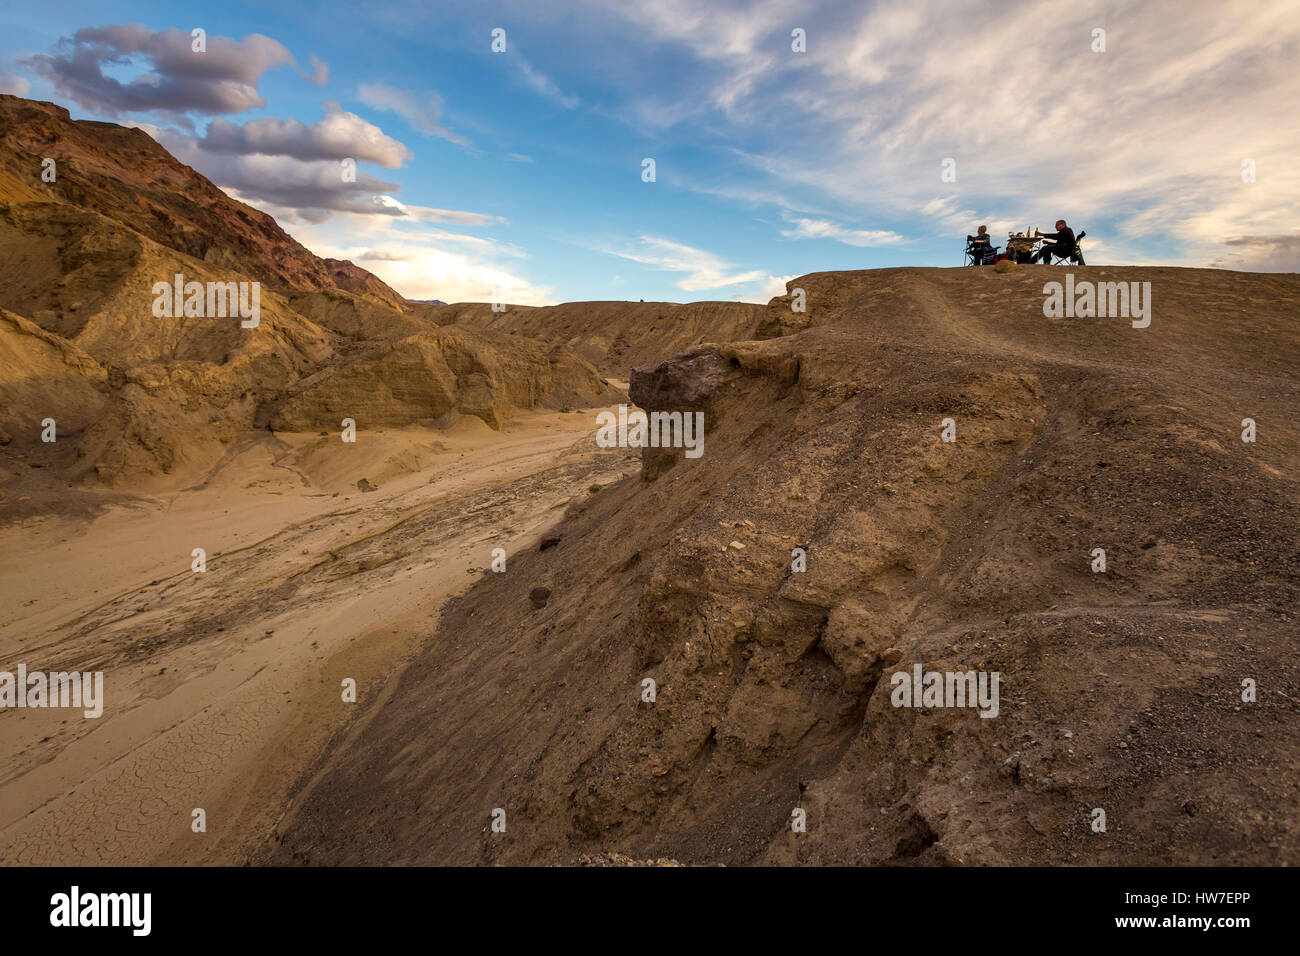 people, couple, picnic, picnicking, Artists Palette, Artist Drive, Death Valley National Park, Death Valley, California - Stock Image